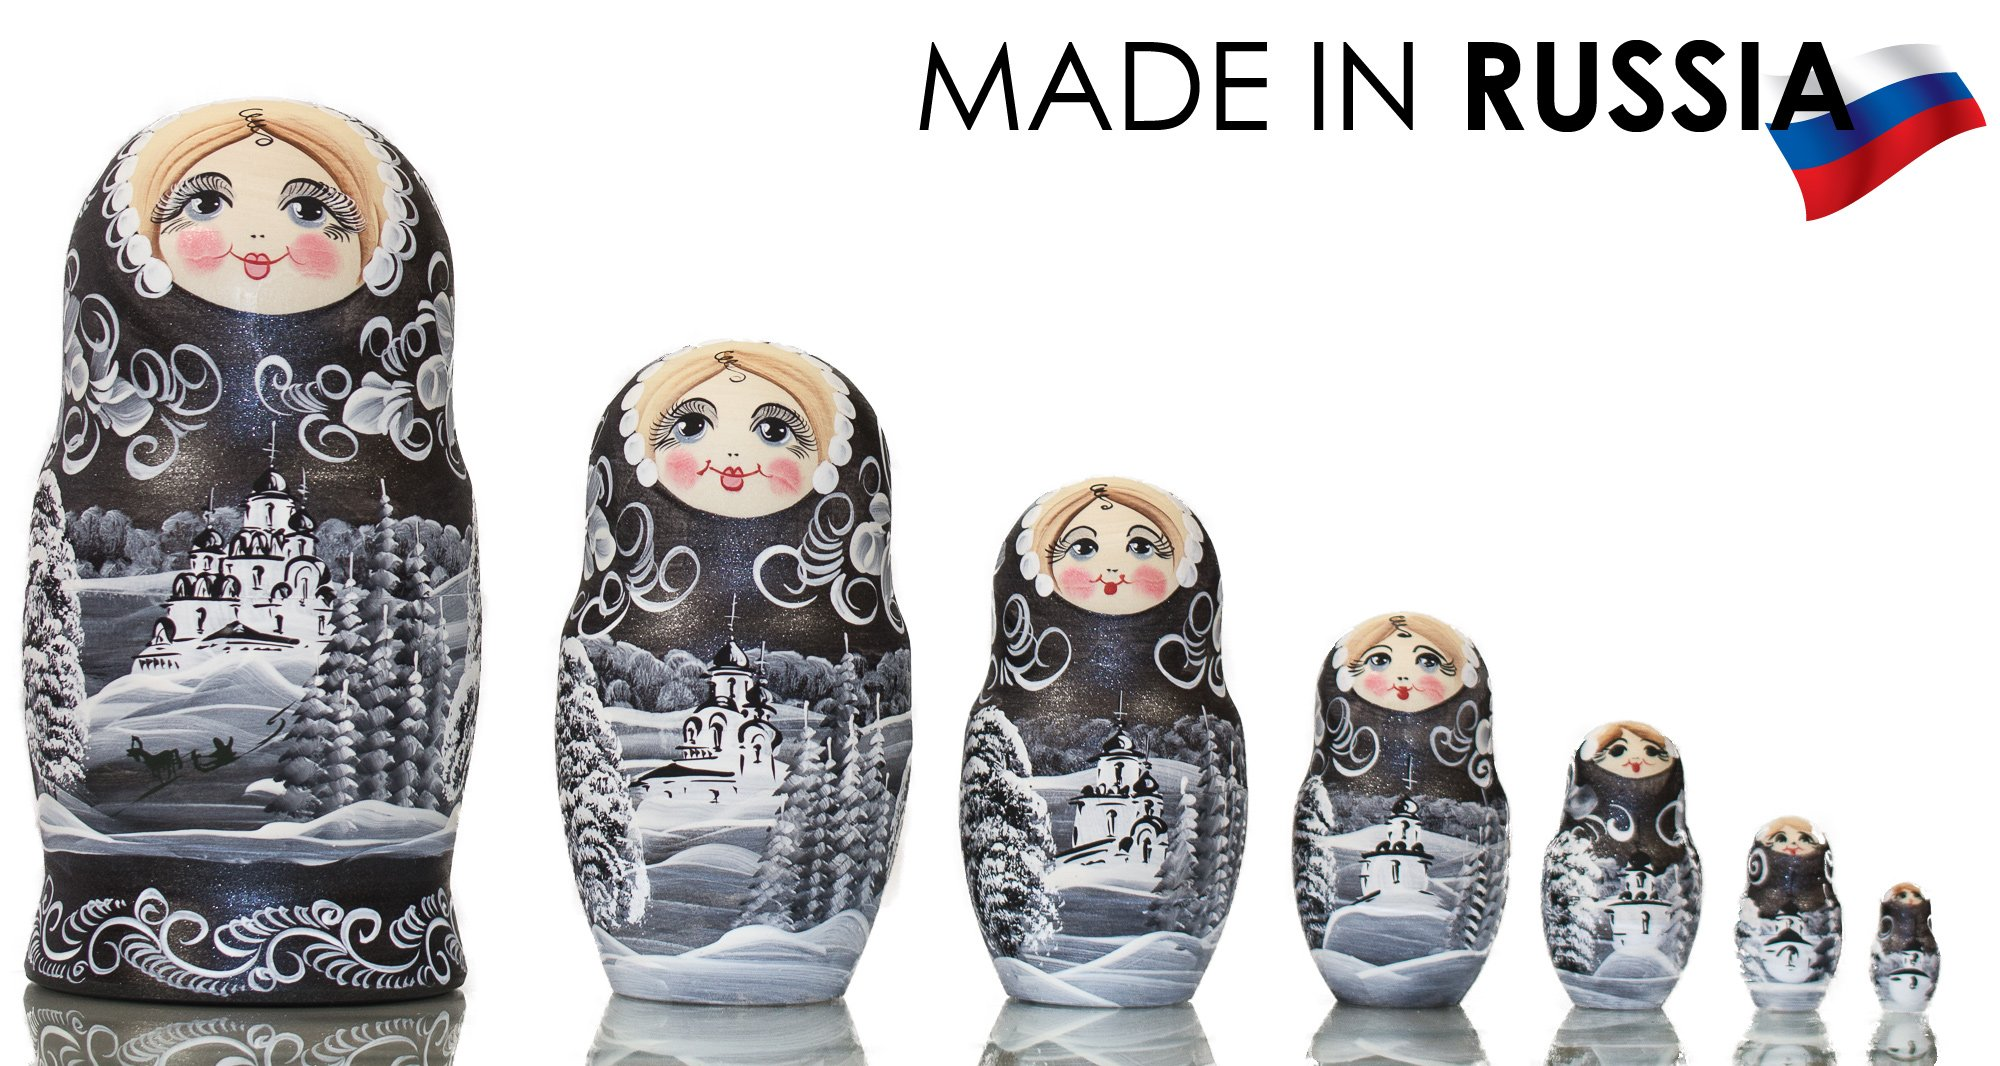 Russian Nesting Doll - ''Winter`s Tale'' - Hand Painted in Russia - MOSCOW KREMLIN GIFT BOX - Wooden Decoration Gift Doll - Traditional Matryoshka Babushka (8`` (7 dolls in 1), Silver Night) by craftsfromrussia (Image #2)